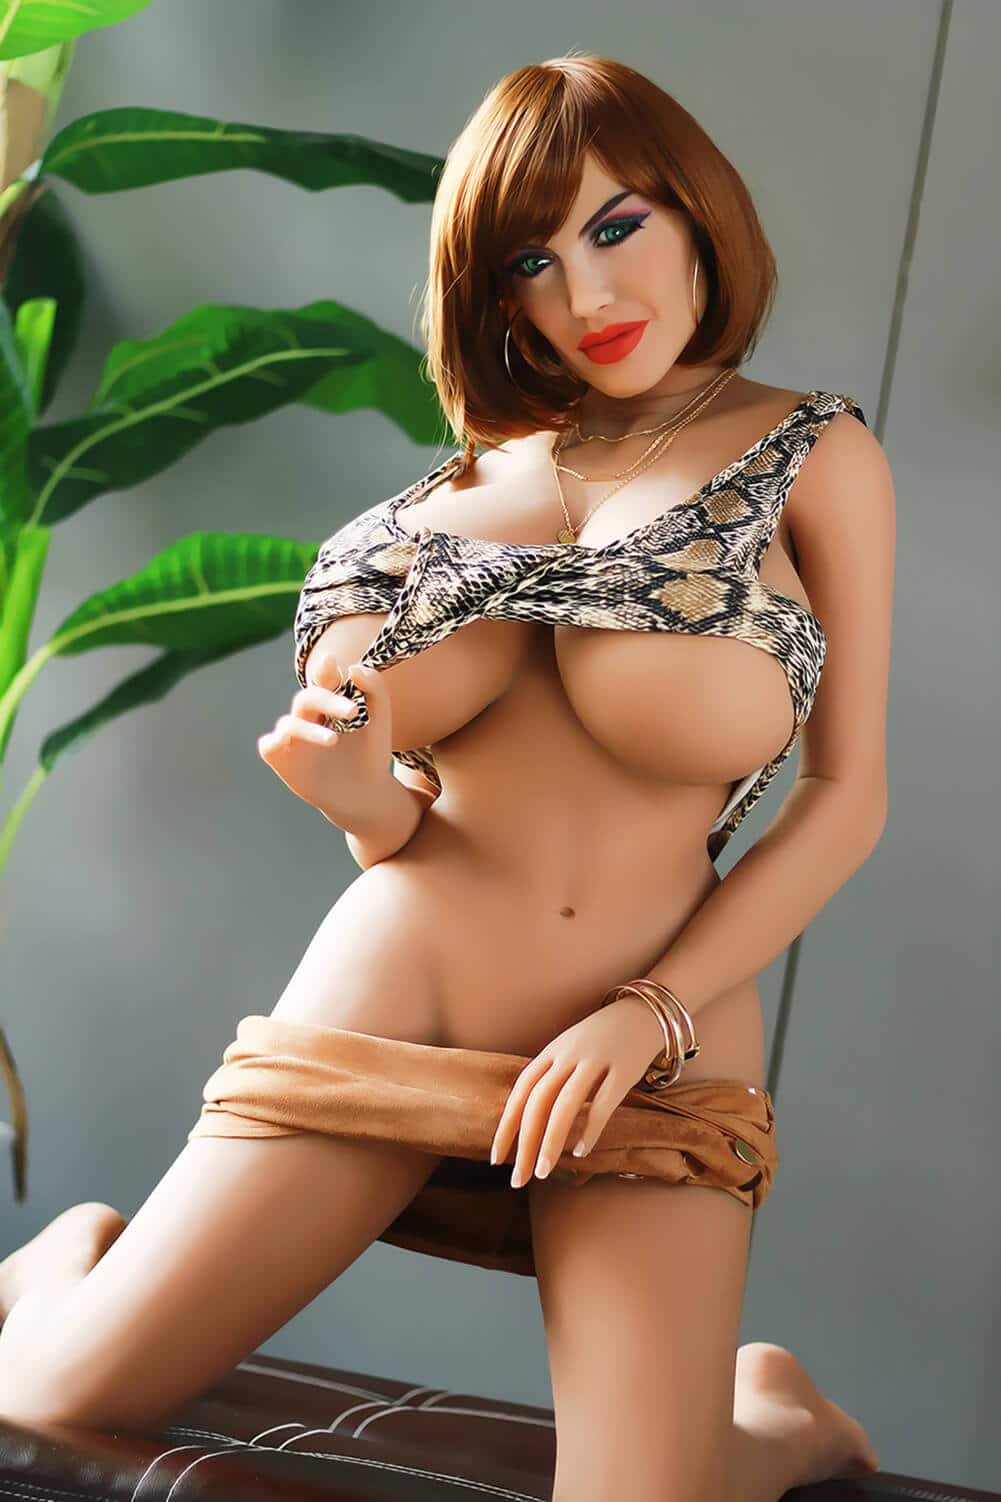 Gros seins nude (58 pictures)